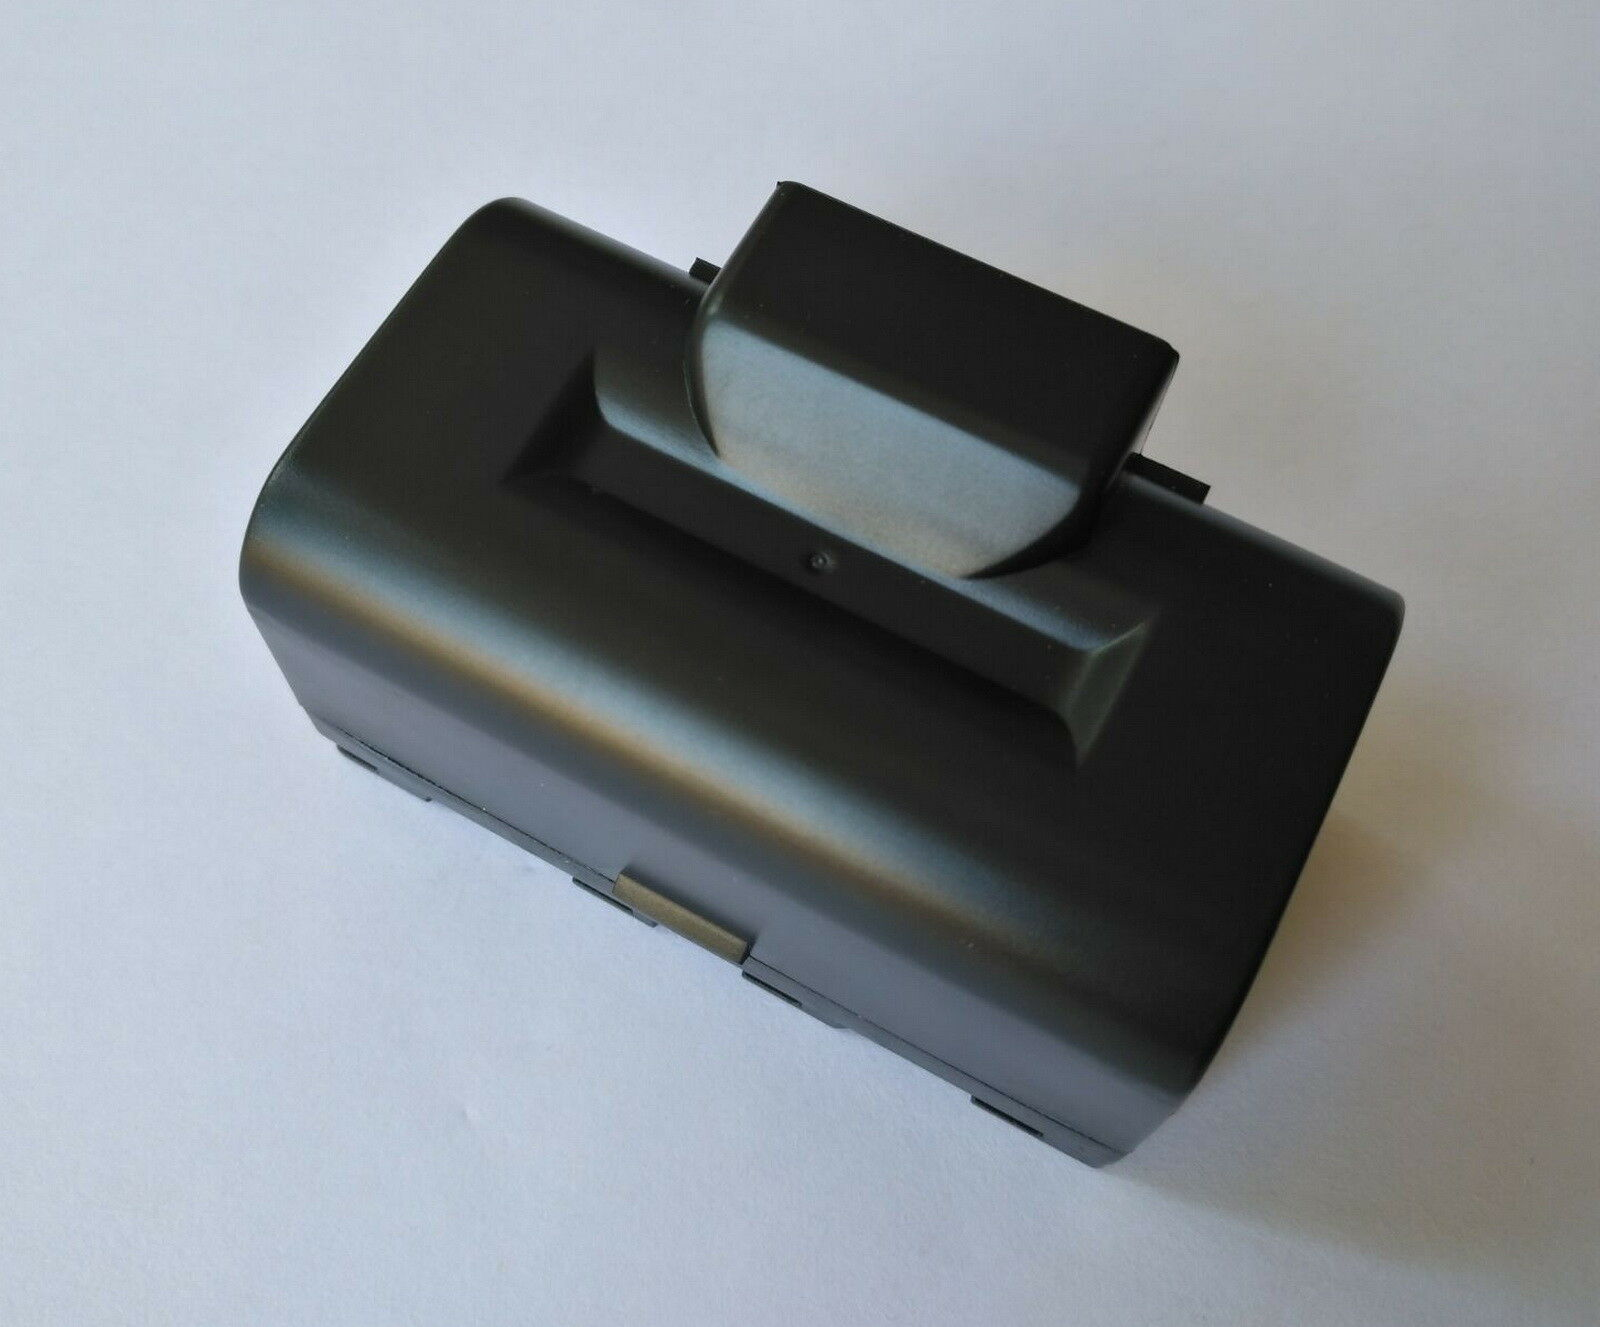 NEW TOPCON BT-61Q 7.4V Battery for Topcon GTS-720/GTS-750/GPT-7500 Total Station